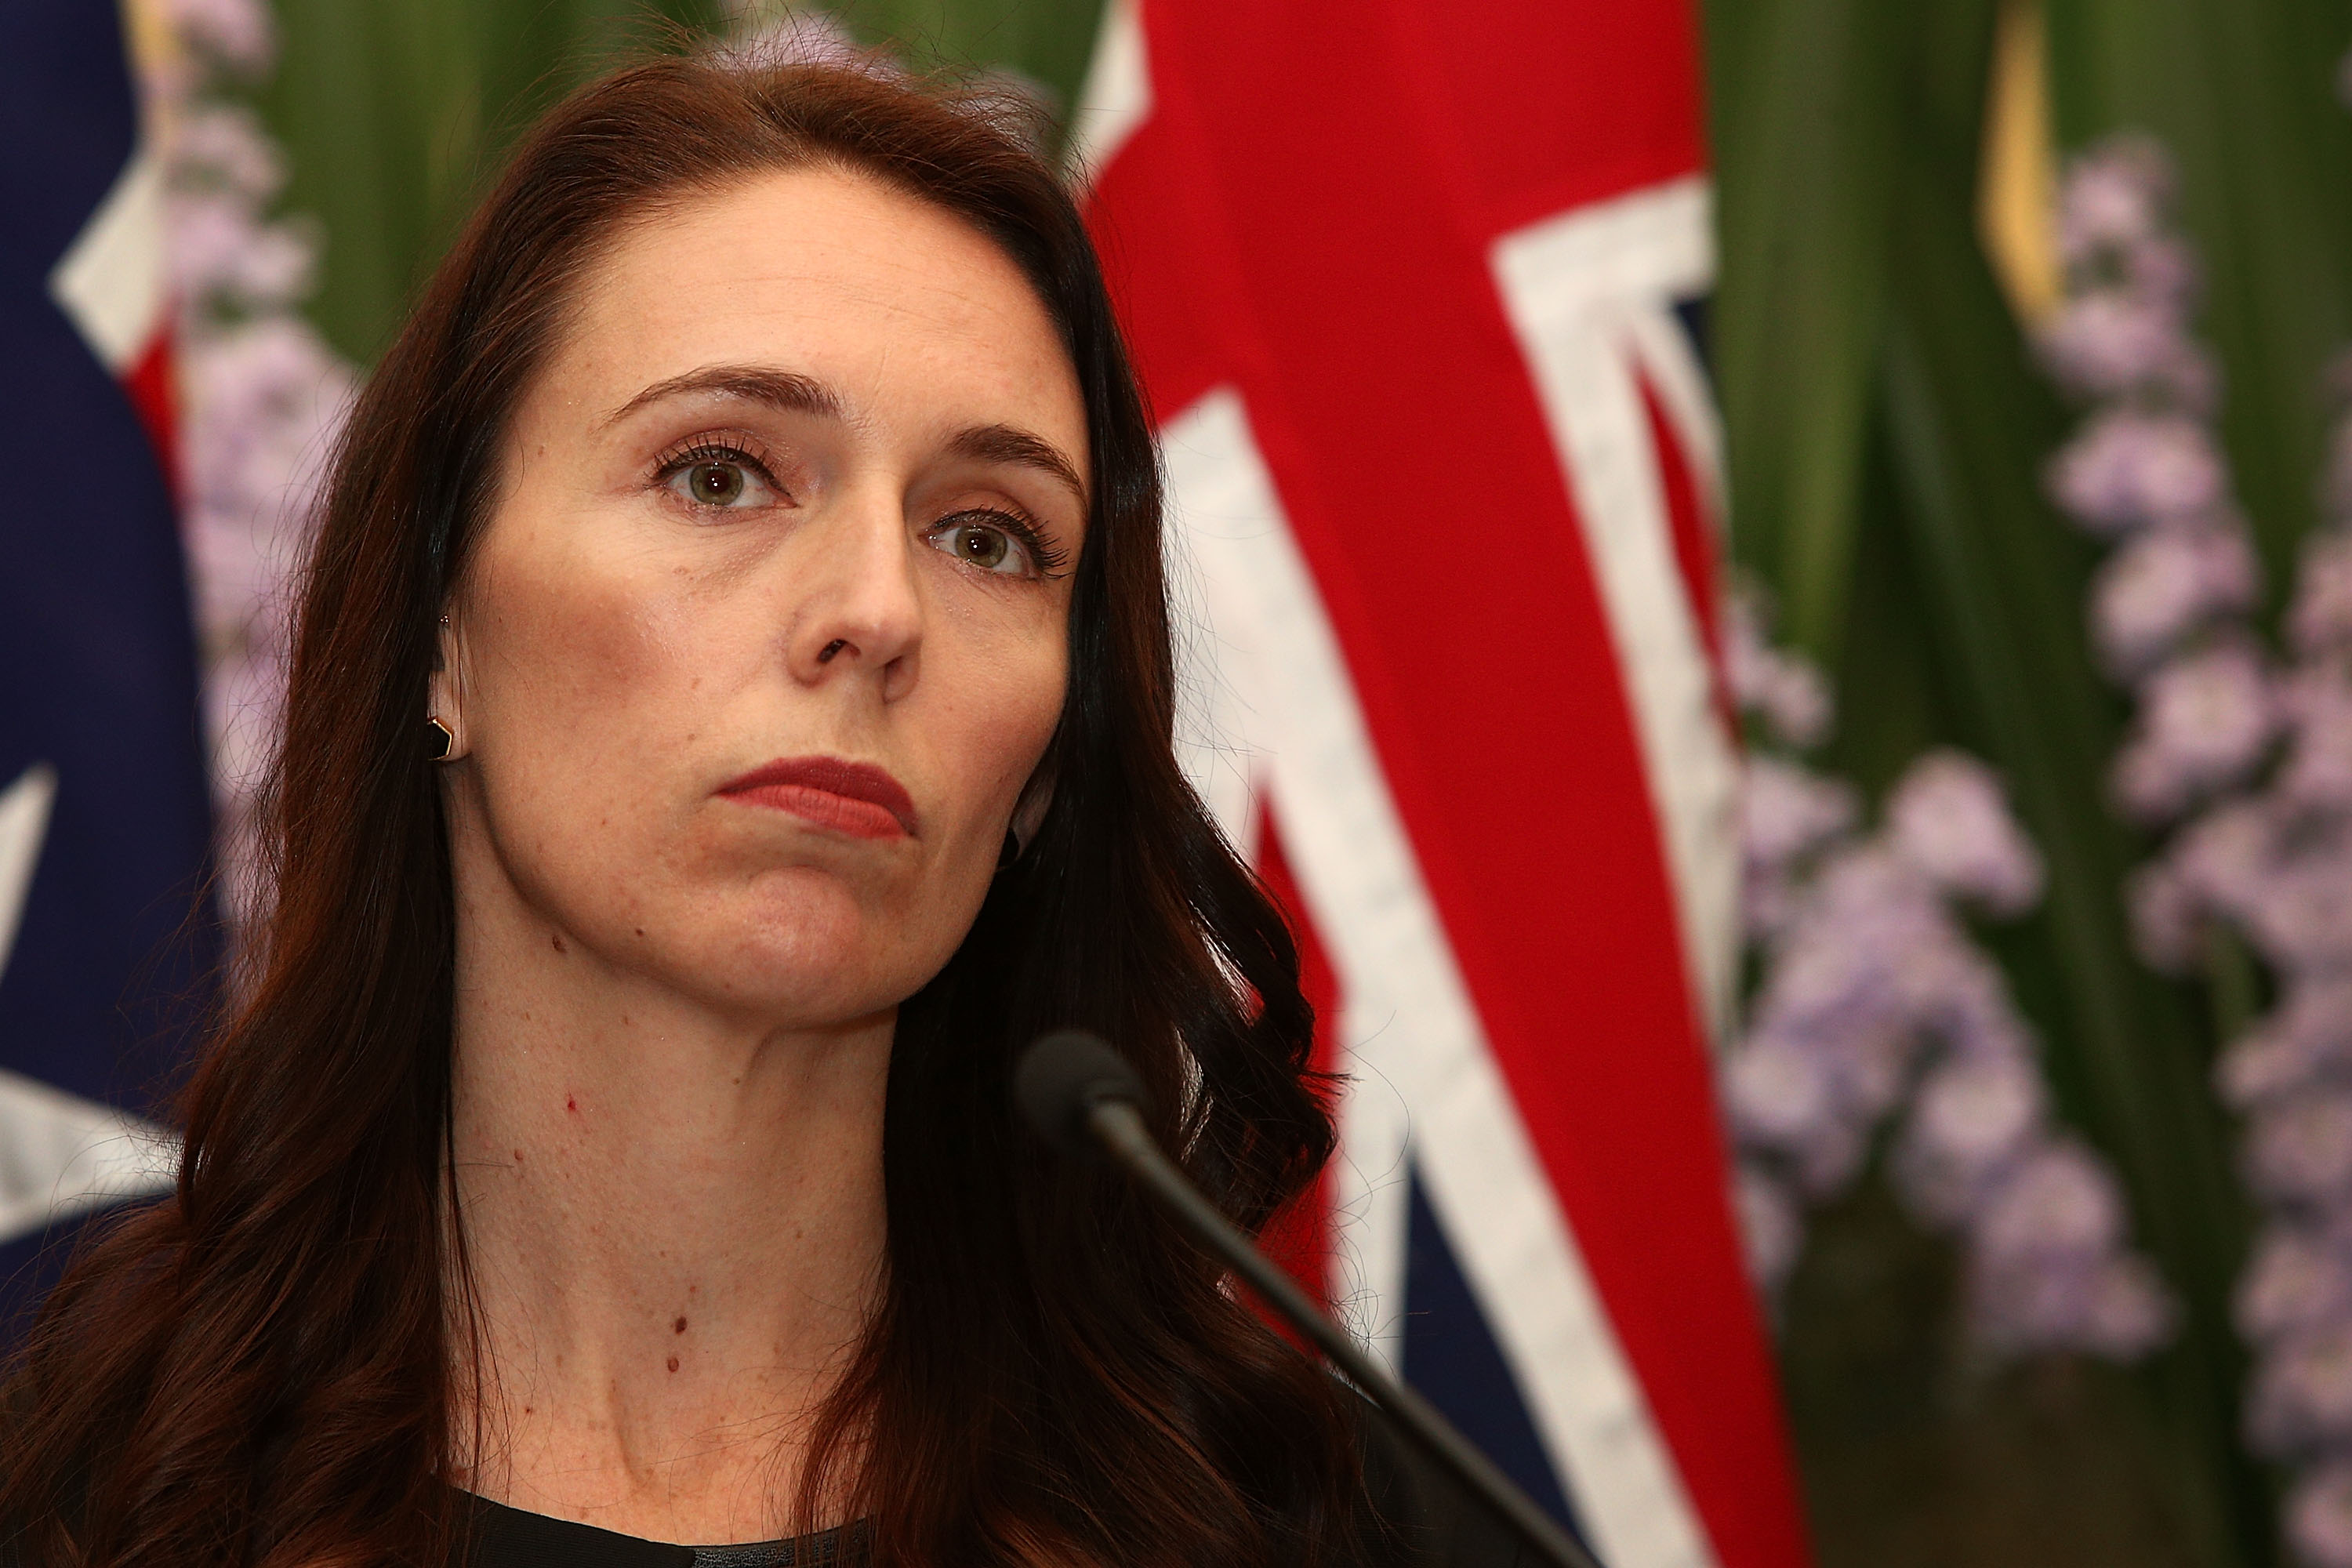 Jacinda Ardern and Winston Peters overpaid thousands of dollars